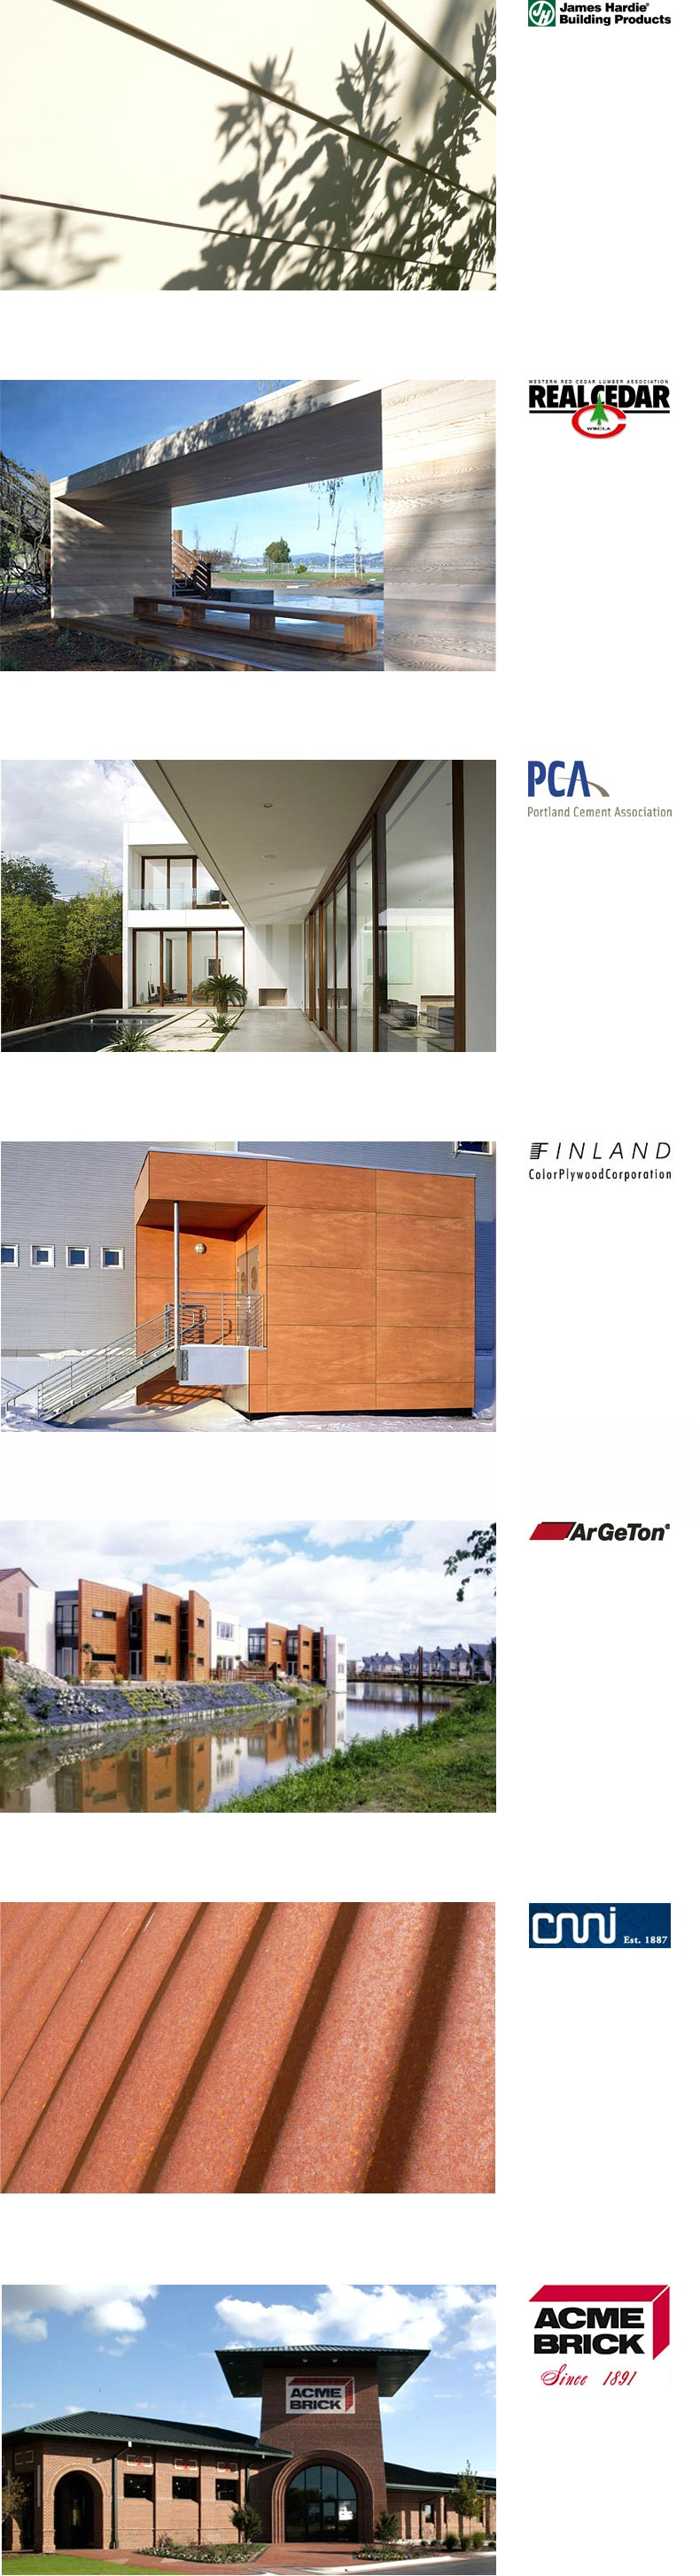 Product Resources images for the wf2studio modern plan collection website